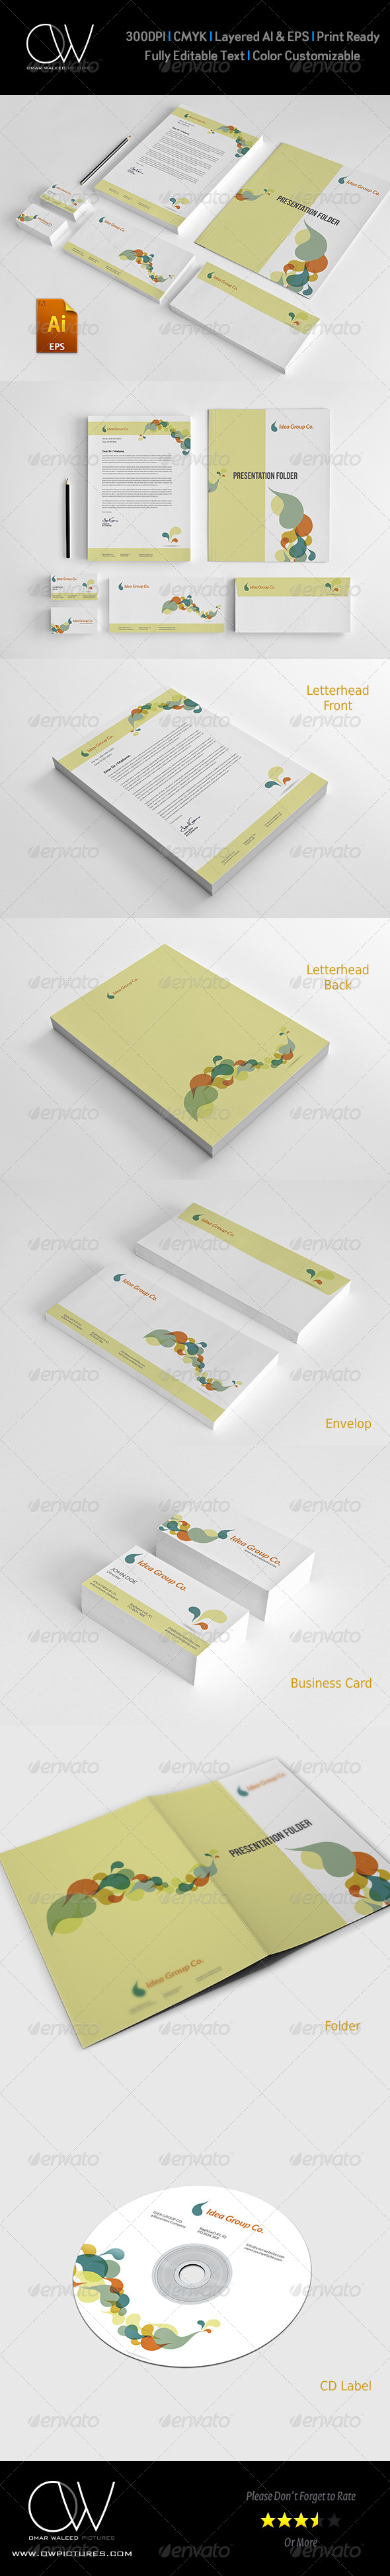 GraphicRiver Corporate Stationery Pack Design Template Vol.9 7771766